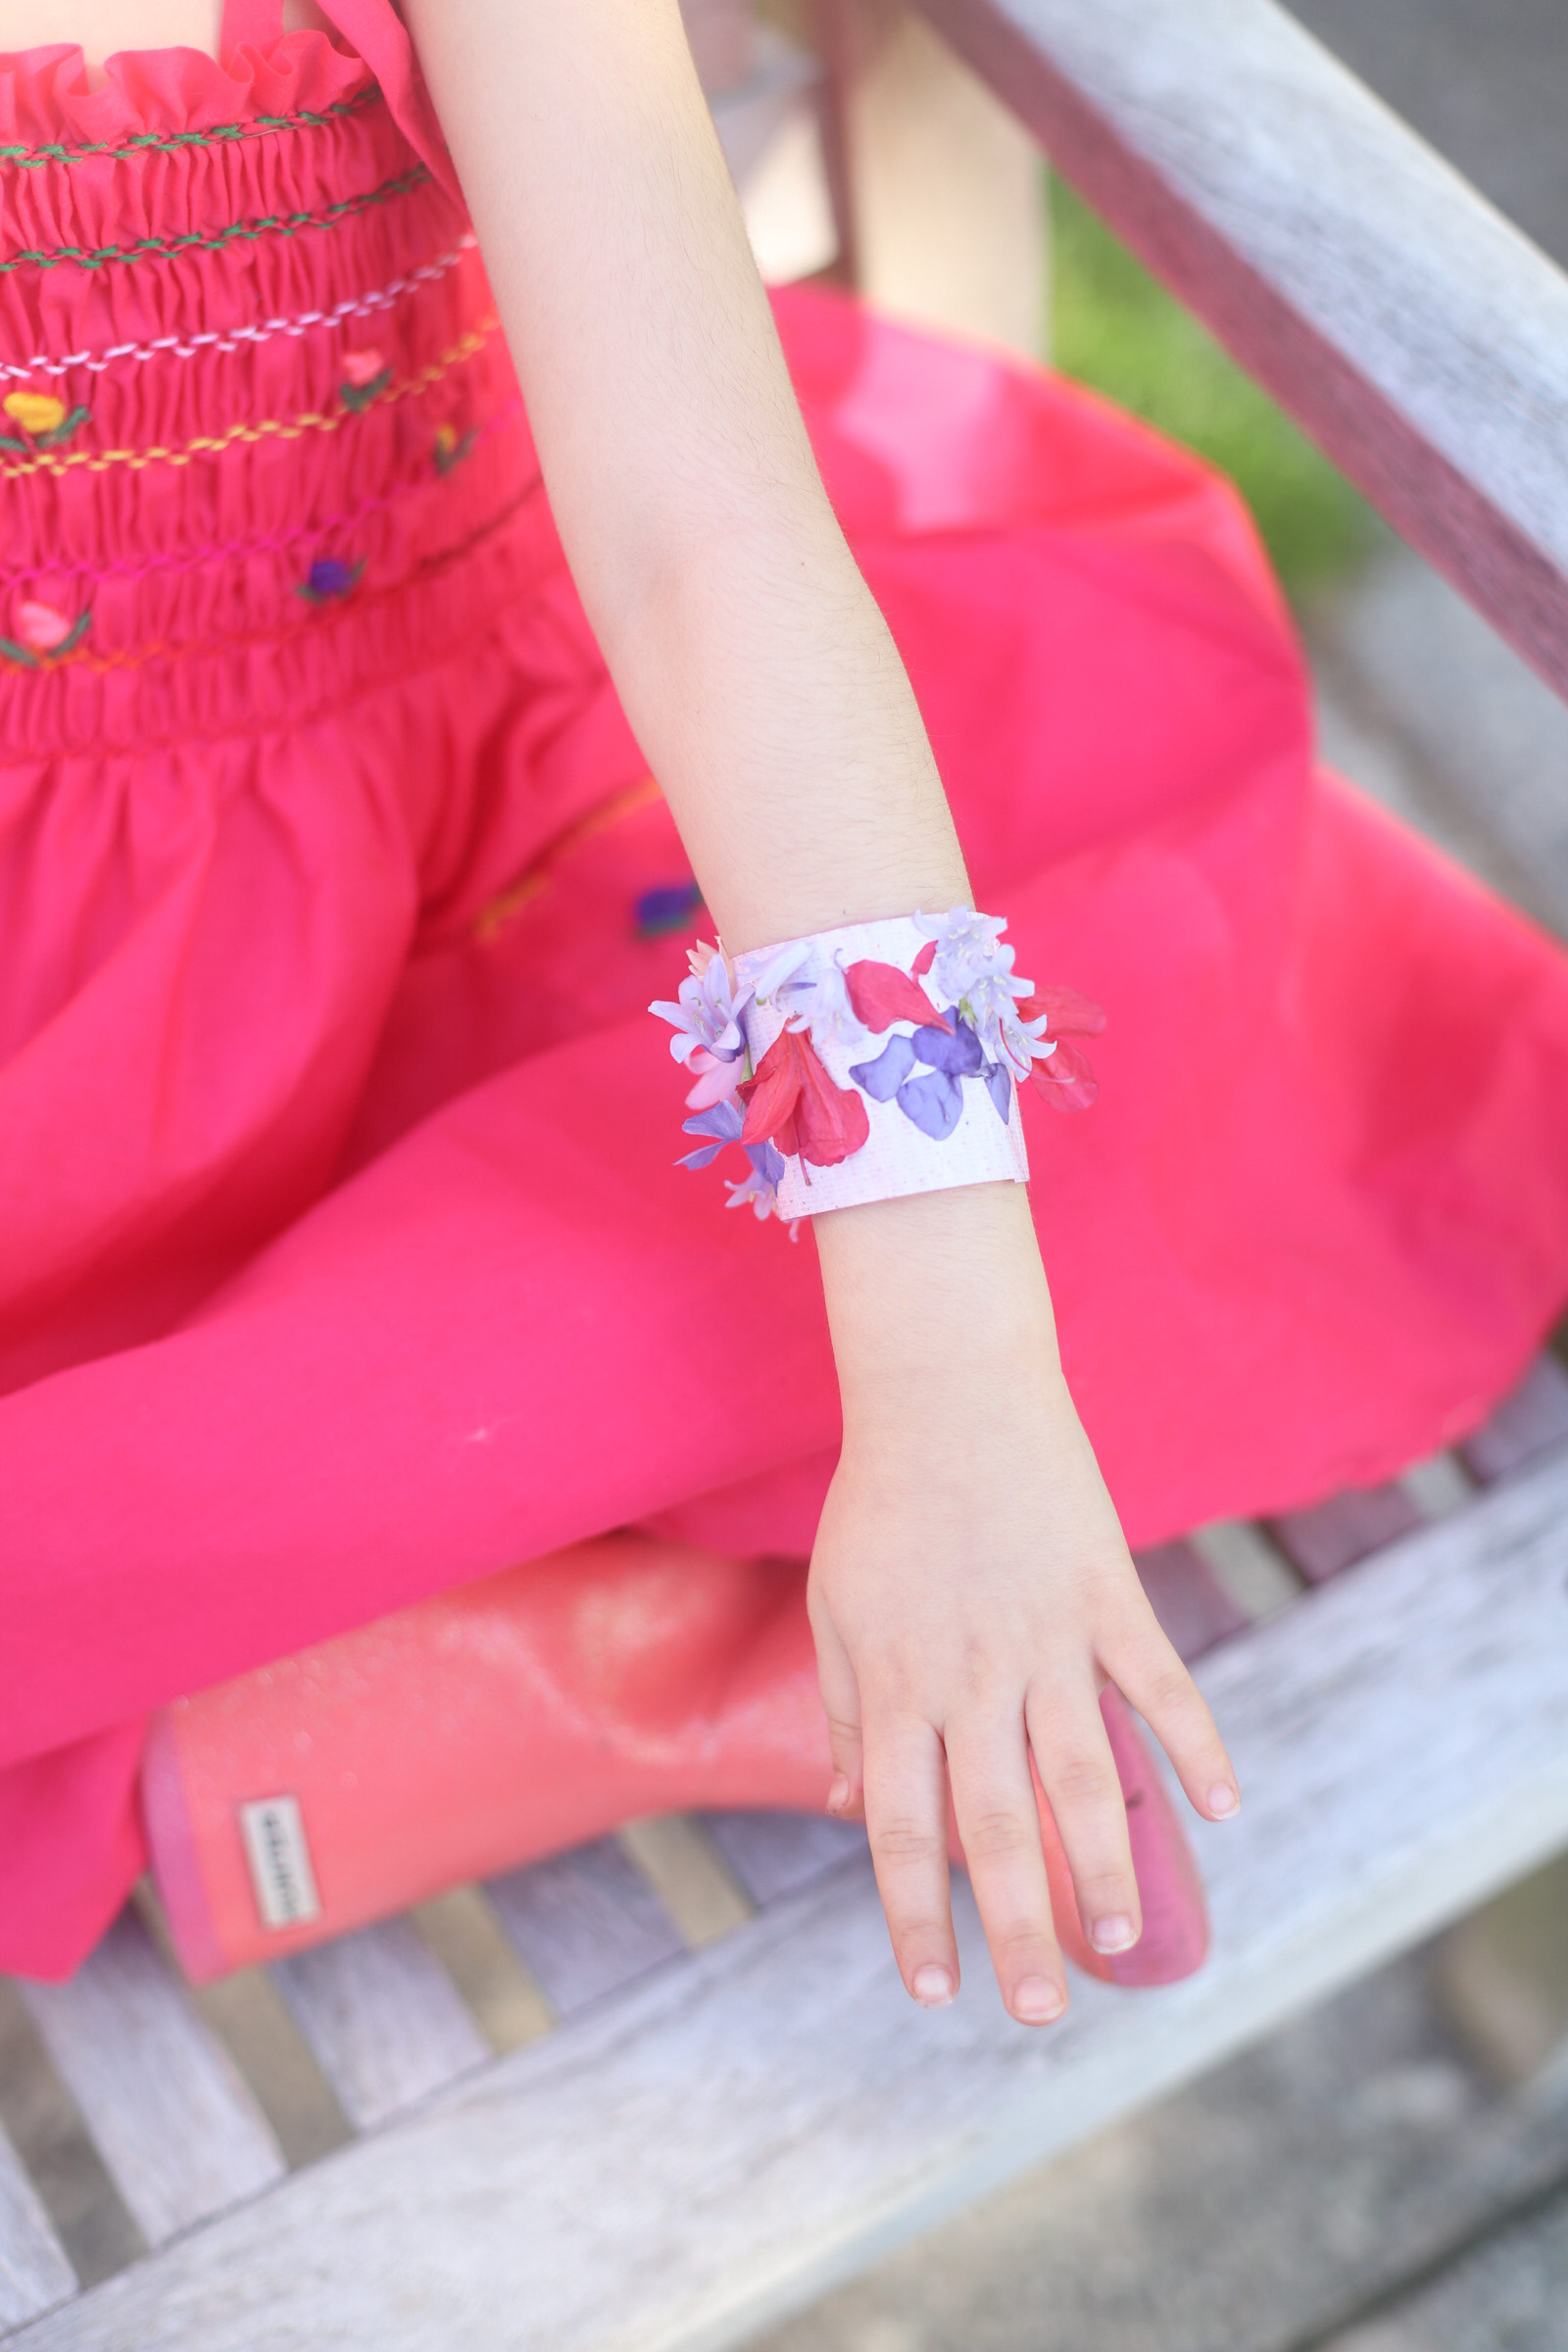 These super simple DIY kids nature bracelets are the perfect fun activity to do on your next nature walk. All you'll need is duct tape and nature! (Psst ... the more flowers around, the better!) | glitterinc.com | @glitterinc